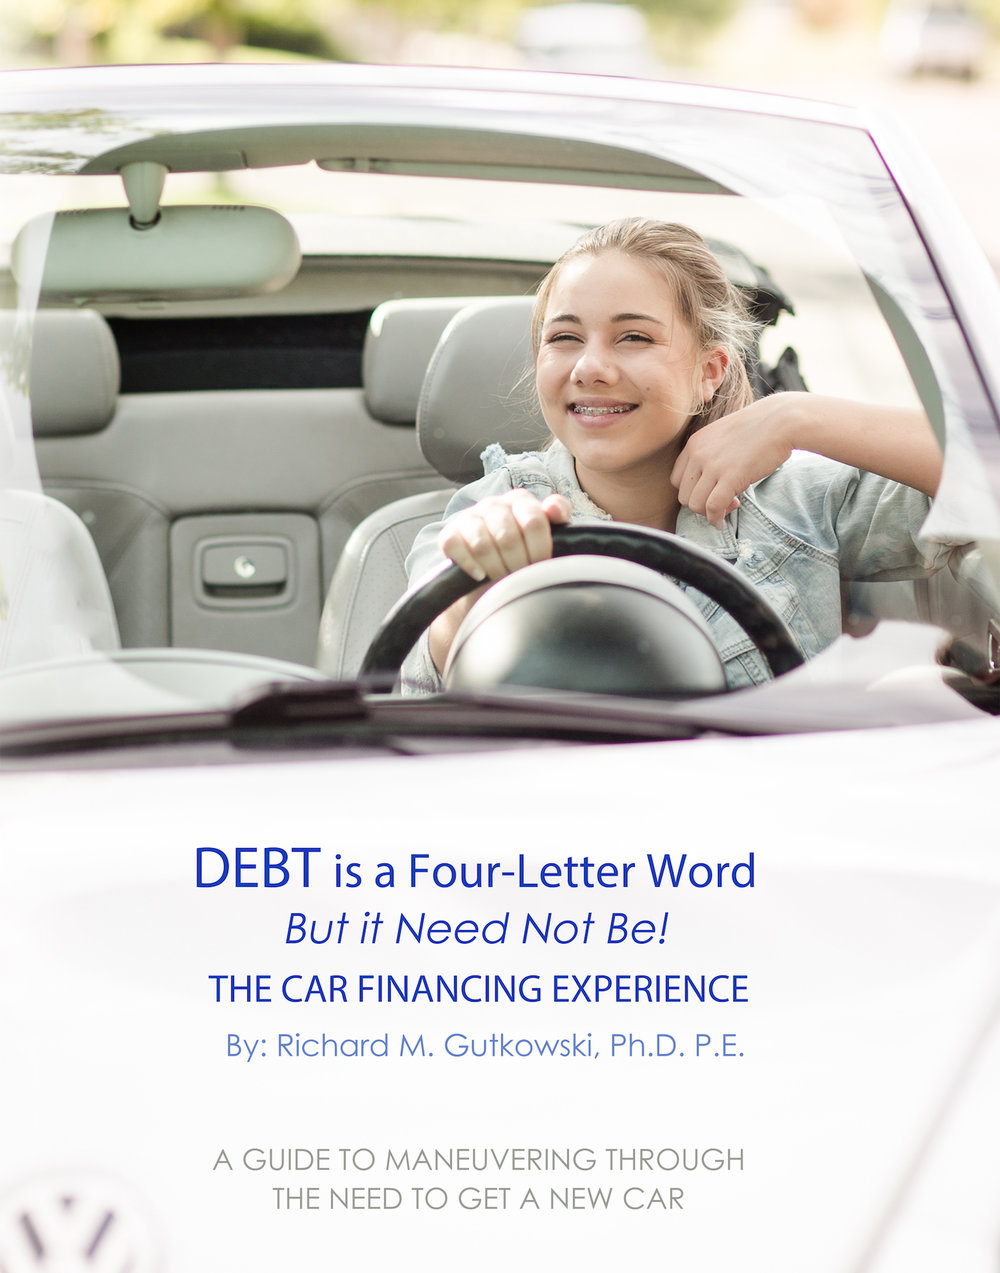 - DEBT is a Four-Letter Word - But It Need Not Be! is an on going book series (Vol. 2- THE CAR FINANCING EXPERIENCE); written in narrative, non-fiction style. It shares the hypothetical, but realistic, evolving fiscal development of a 16-year-old daughter as her Dad teaches her in depth skills in wisely taking on debt.As her abilities for wise decision-making, timely borrowing and effective repayment of debt grow, so does the maturity of their relationship. Nicole's not so secret desire is to one day outsmart her Dad. I invite you to the peek in and see how close she comes to achieving that. You can drive along at your own pace and have fun!DEBT is a Four-Letter Word…But Need Not Be: THE CAR FINANCING EXPERIENCE is available  on Amazon.com.